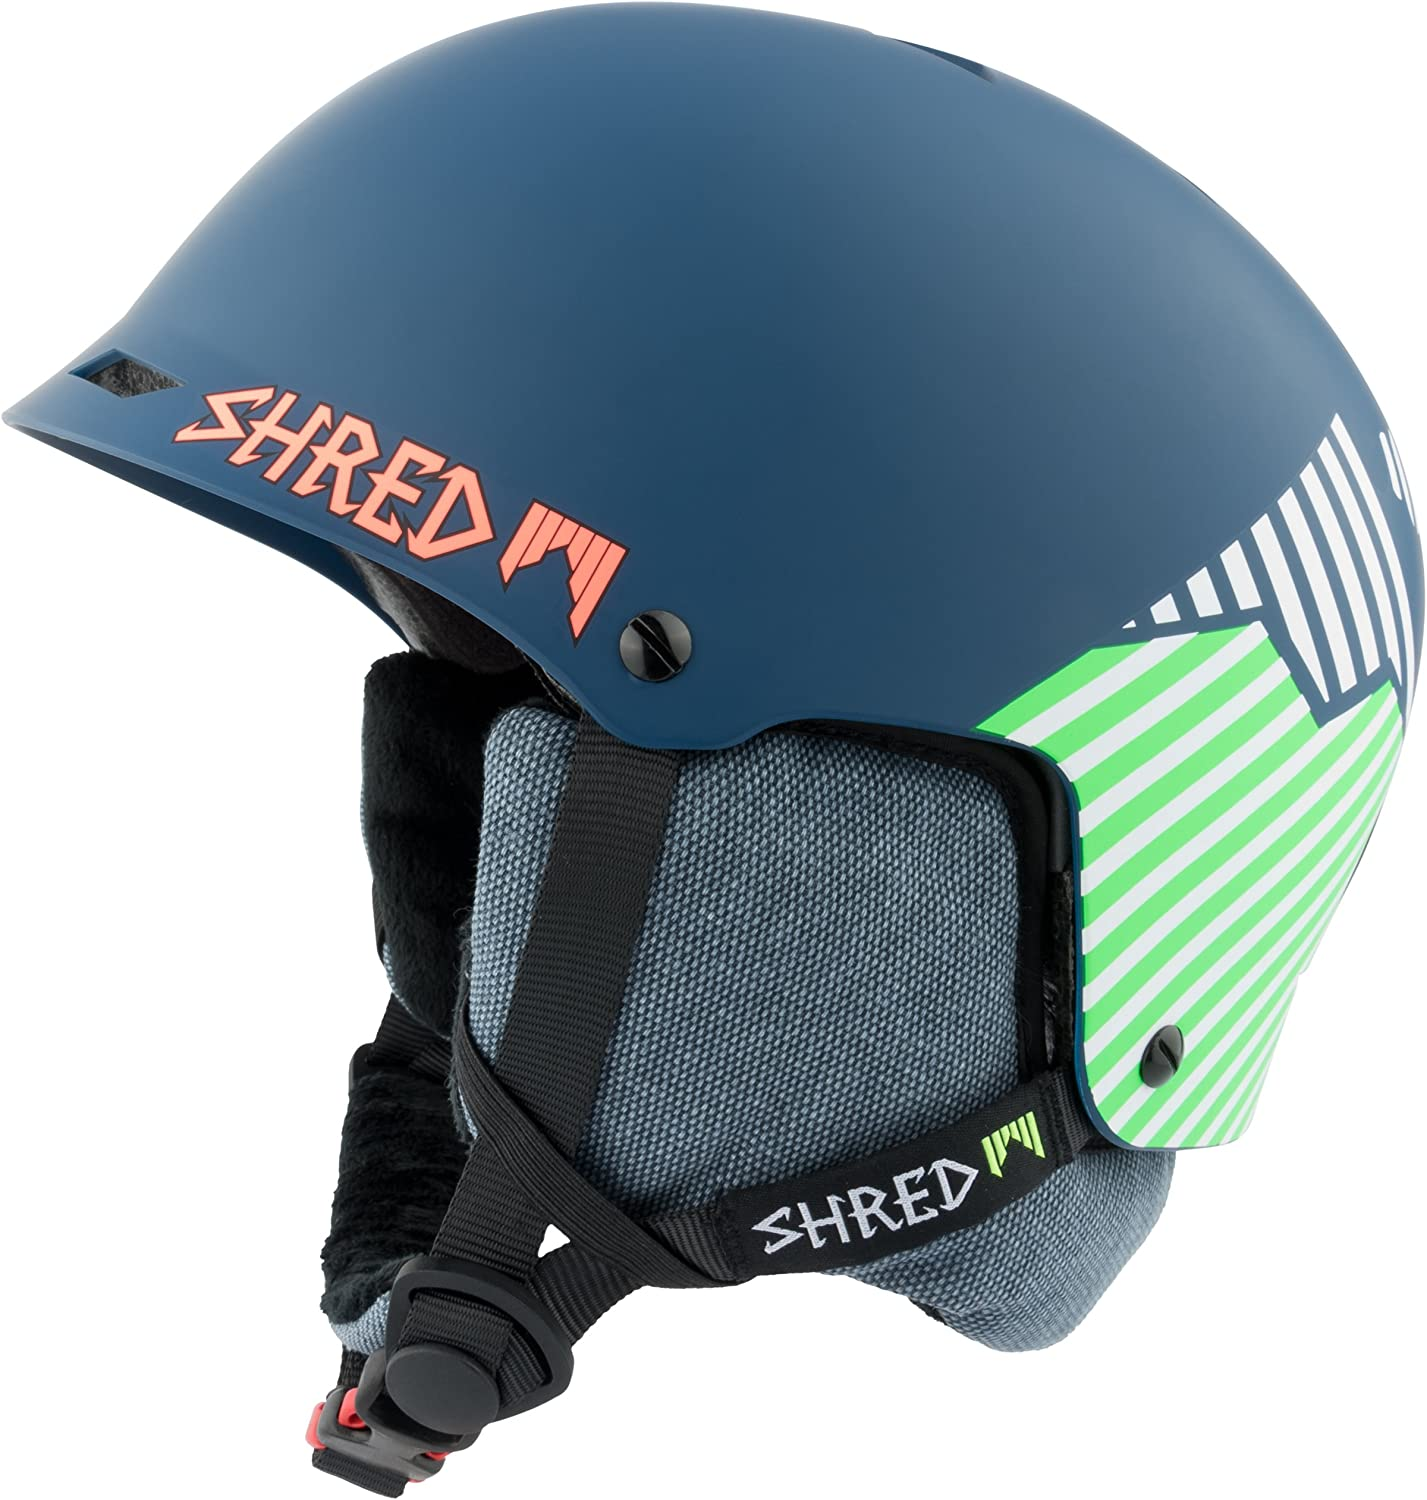 Shred Herren Helm Half Brain D-lux Needmoresnow